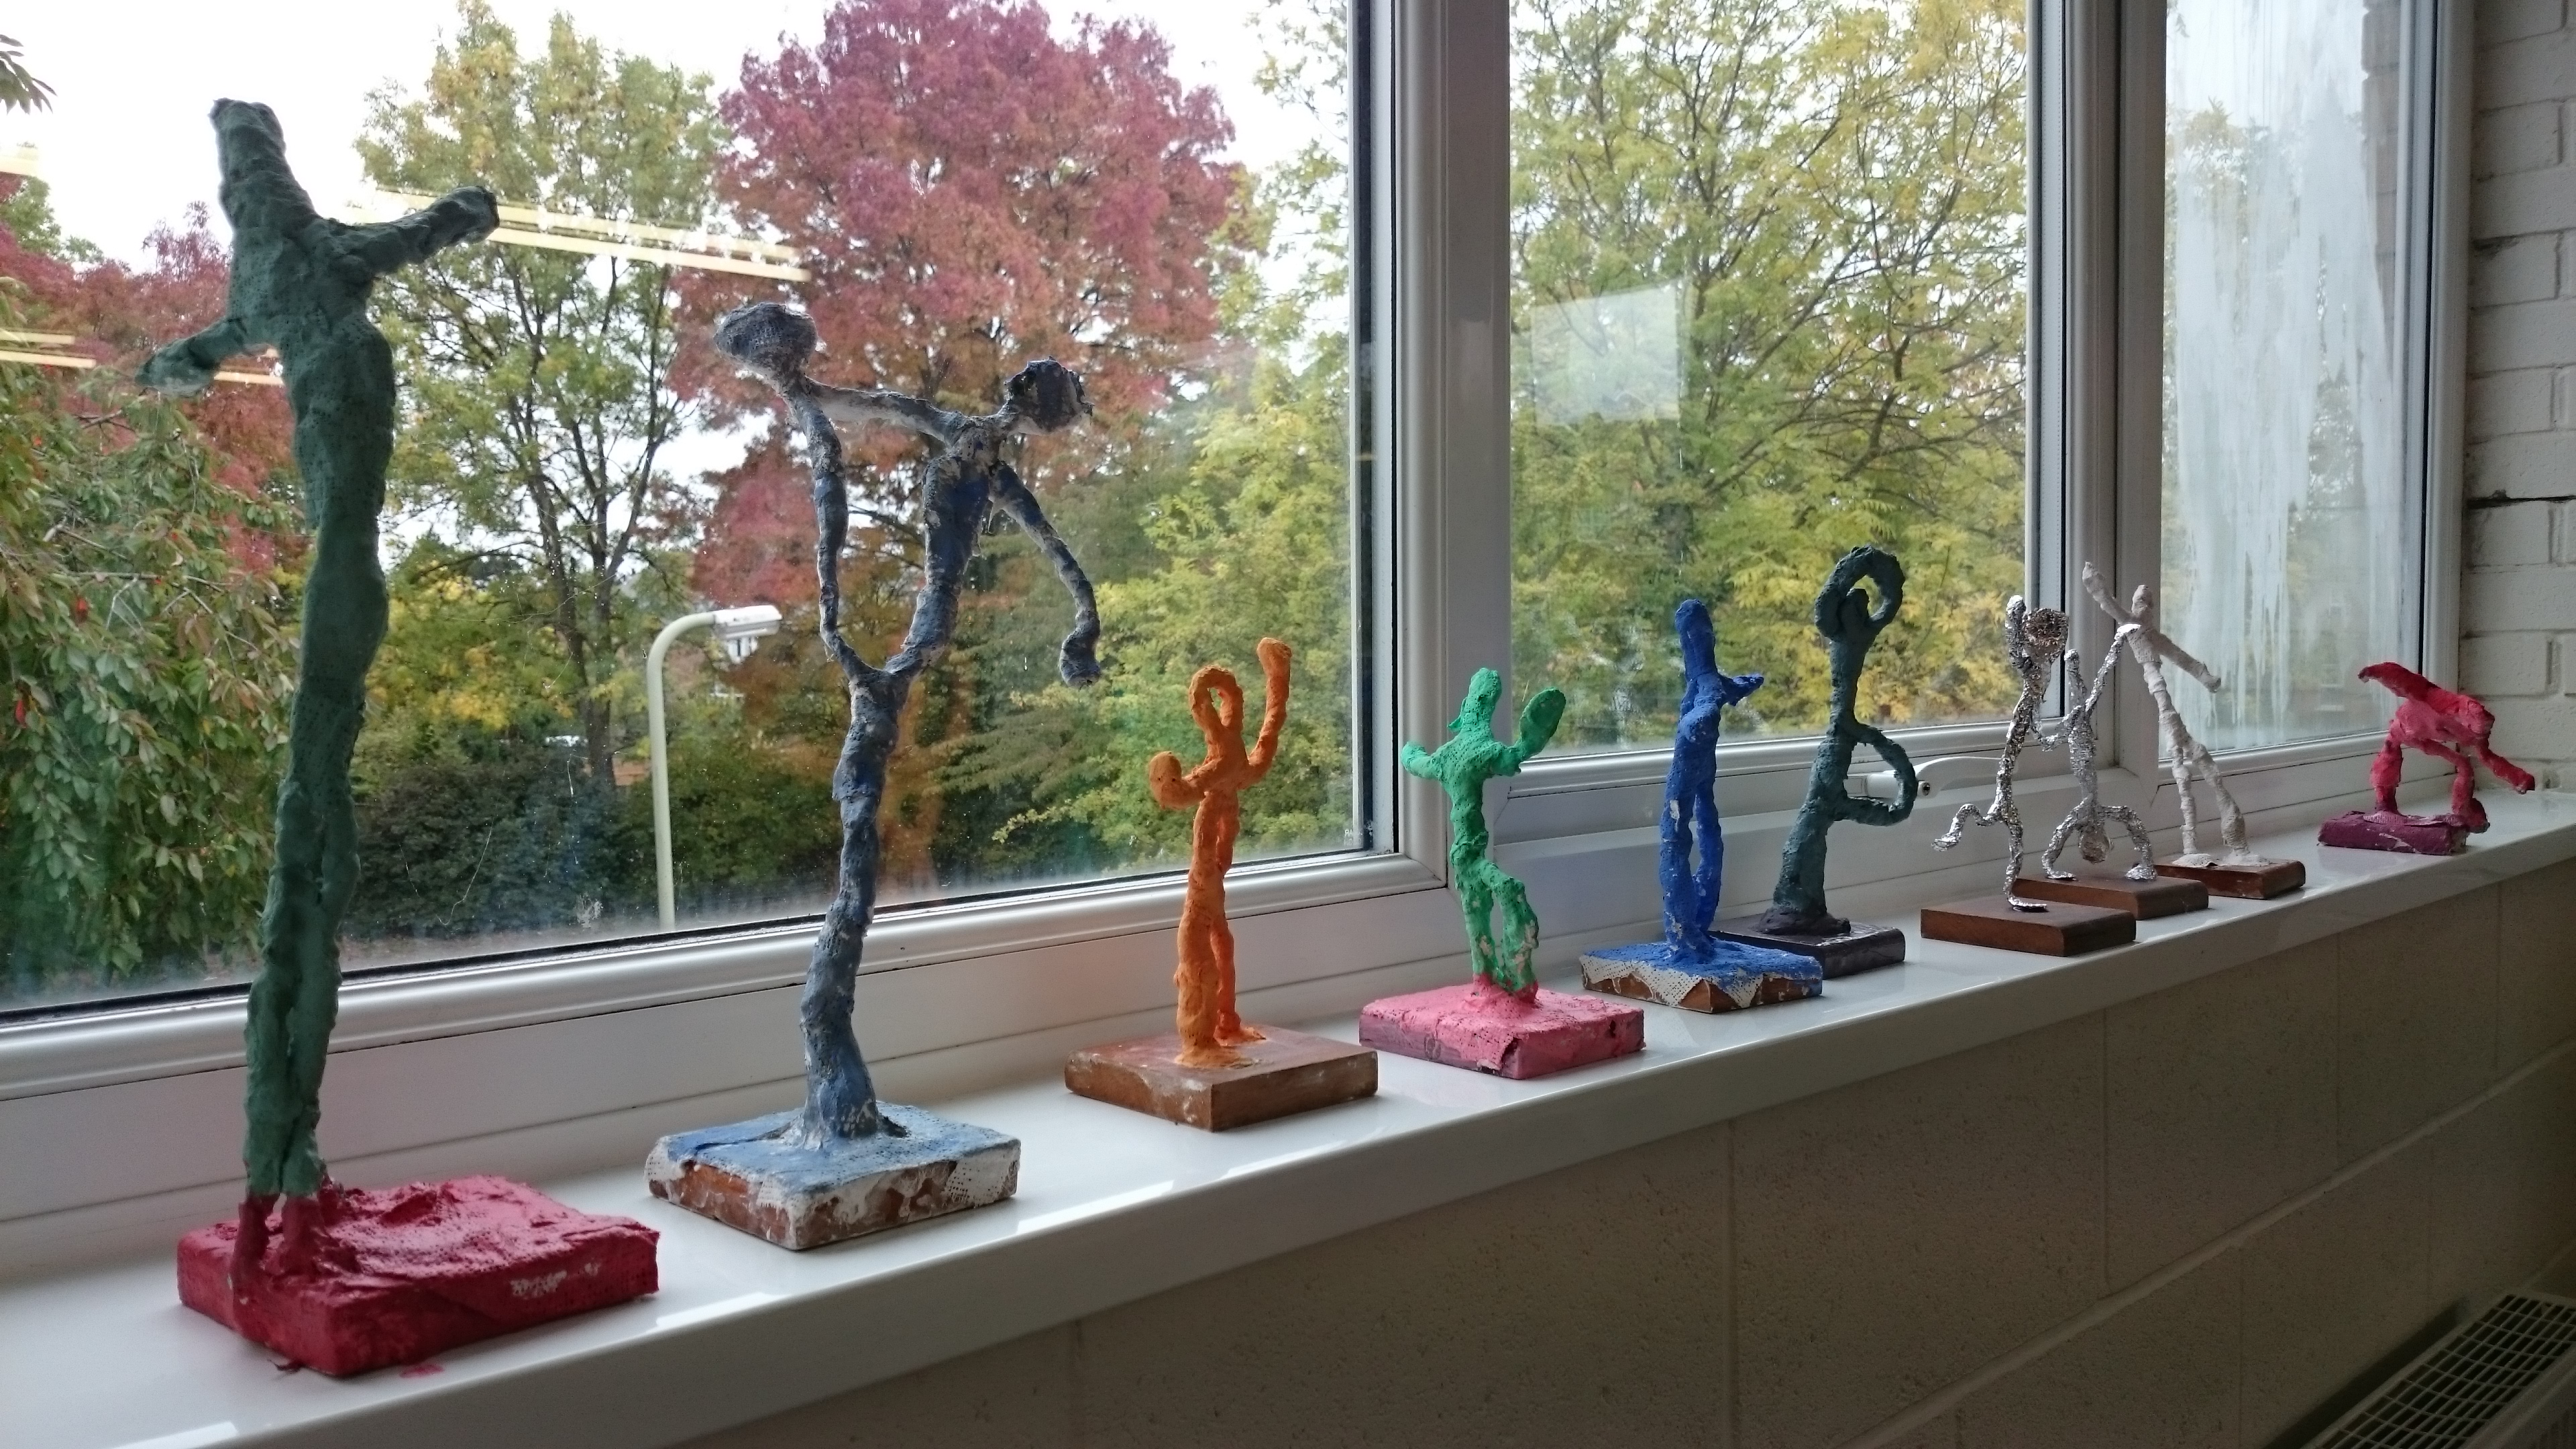 Giacometti inspired sculpture